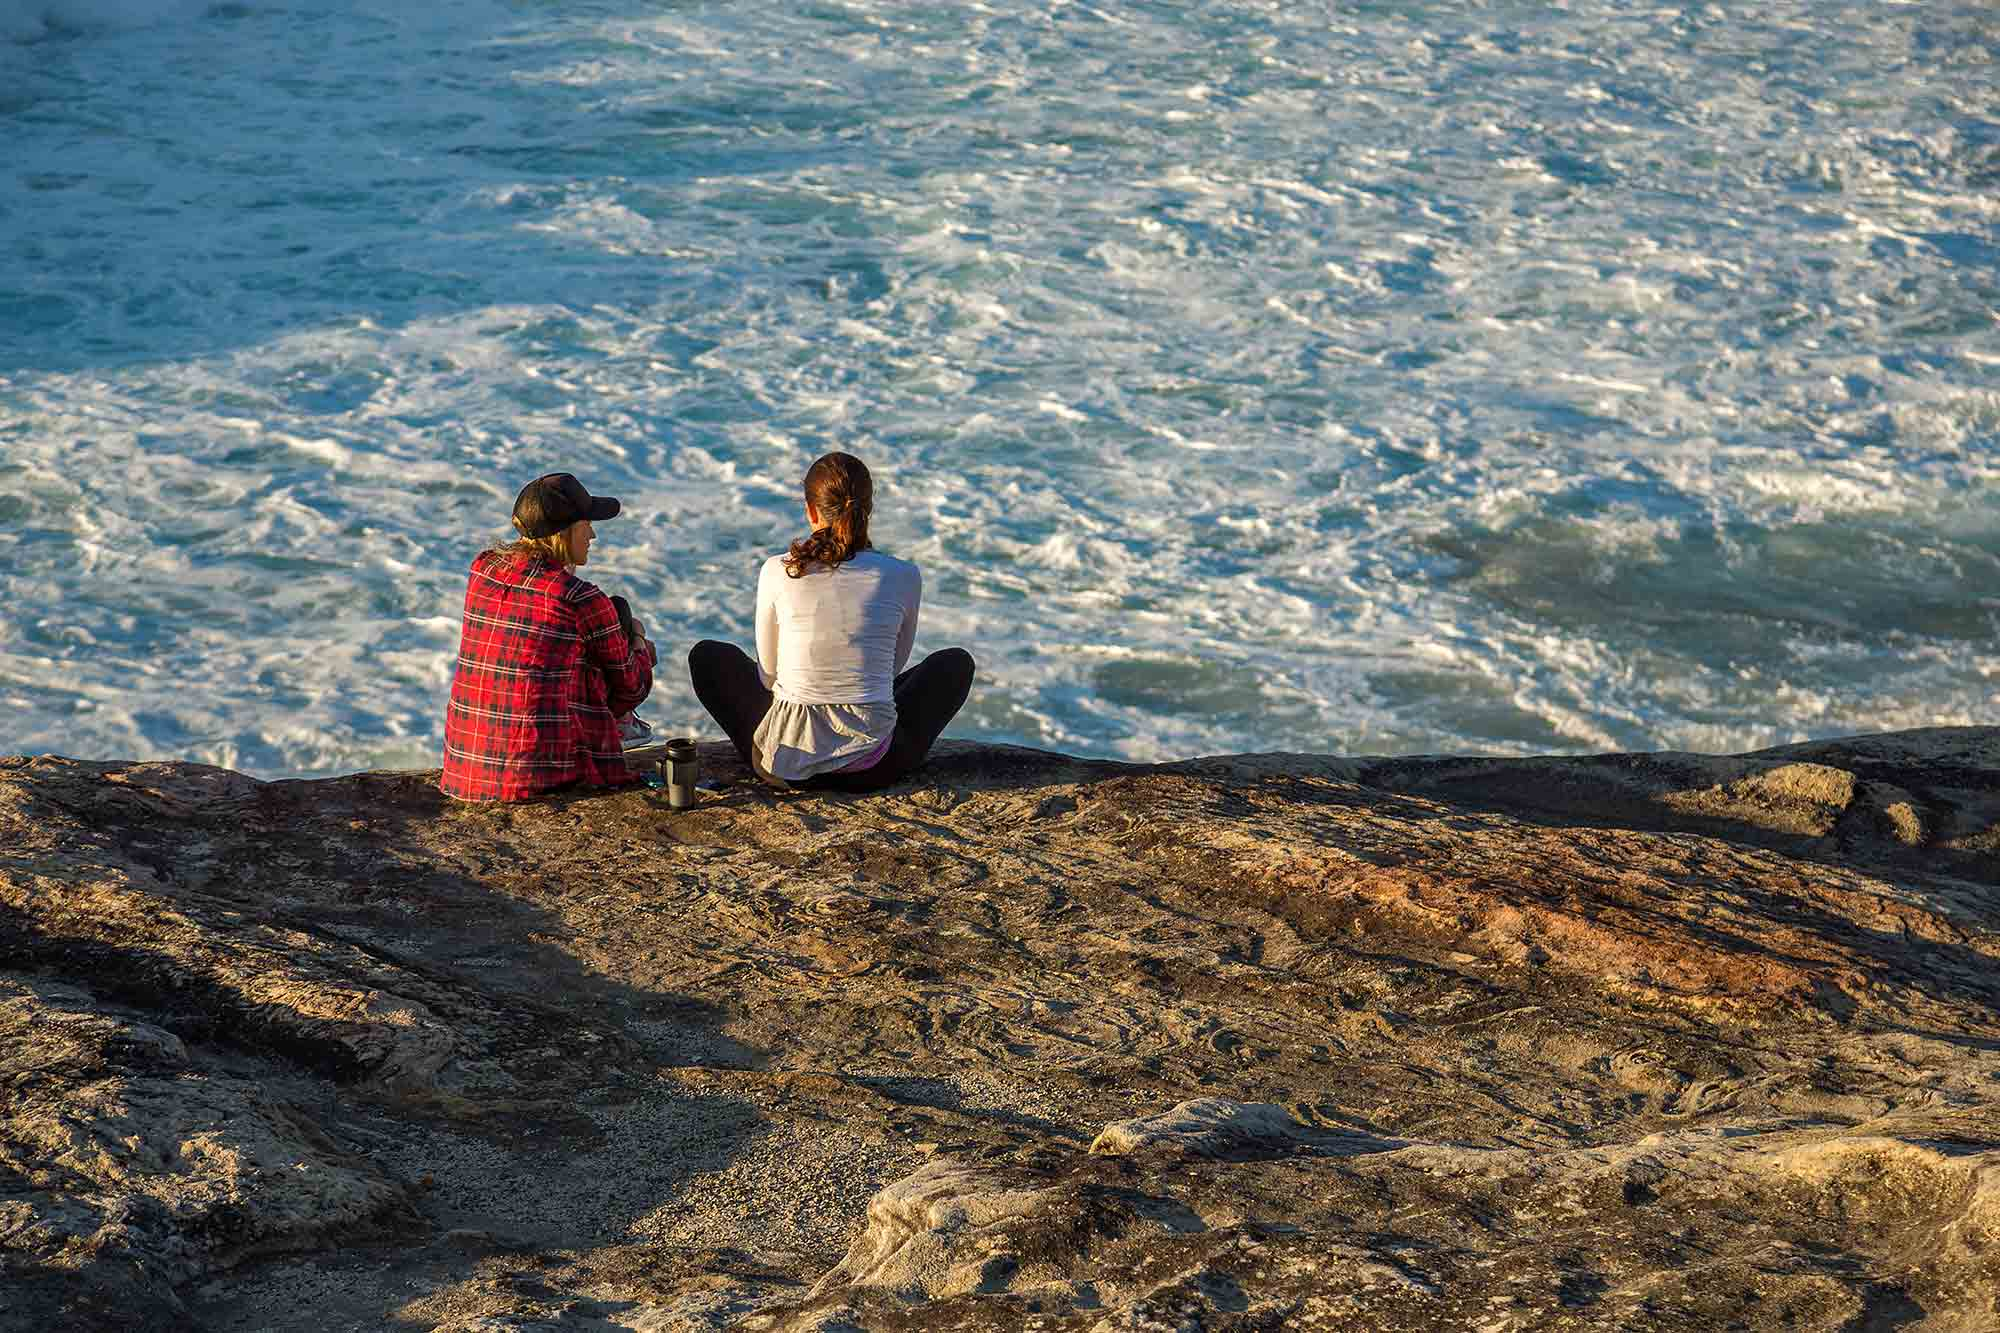 Sydney Coastal Walk: A couple sitting on the cliff near Bondi beach. © Ulli Maier & Nisa Maier